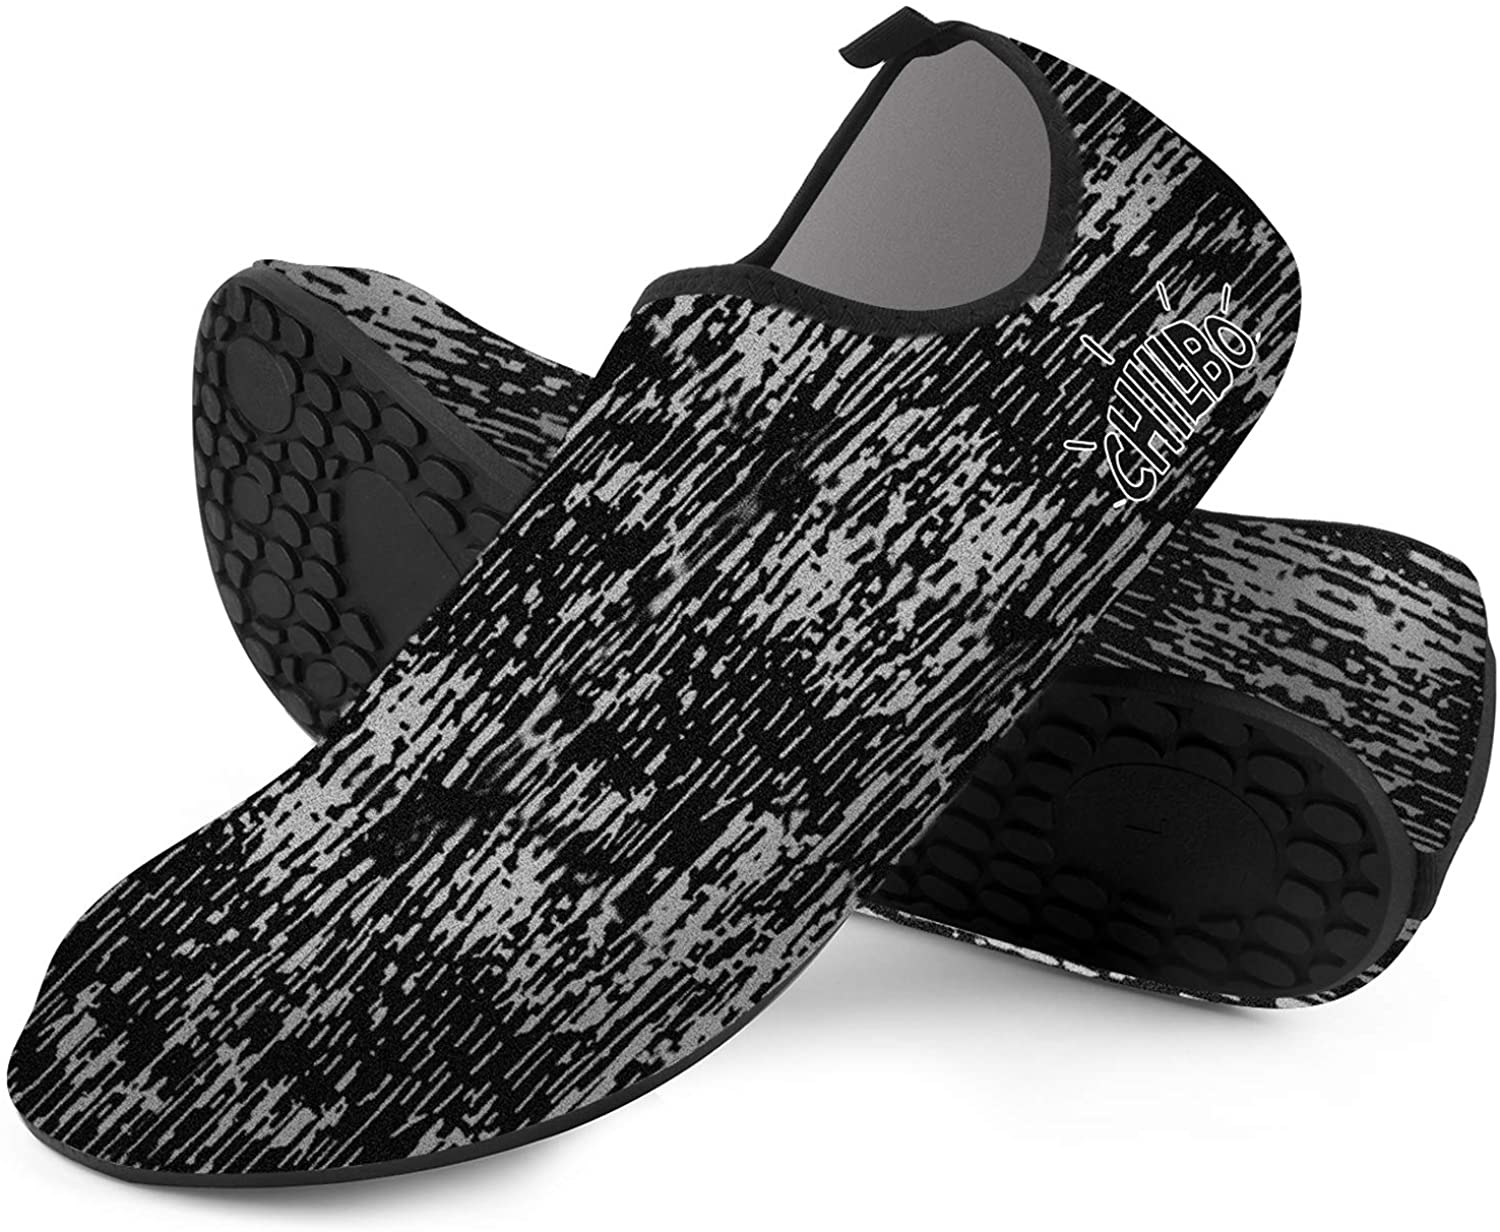 Chillbo Water Shoes - Beach Shoes for Men and Womens Water Shoes 7 Vibrant Styles Swimming Shoes & Water Shoes for Women for Beach Swim Yoga Exercise (M 8-9 Men / 9-10.5 Women, Static Camo)